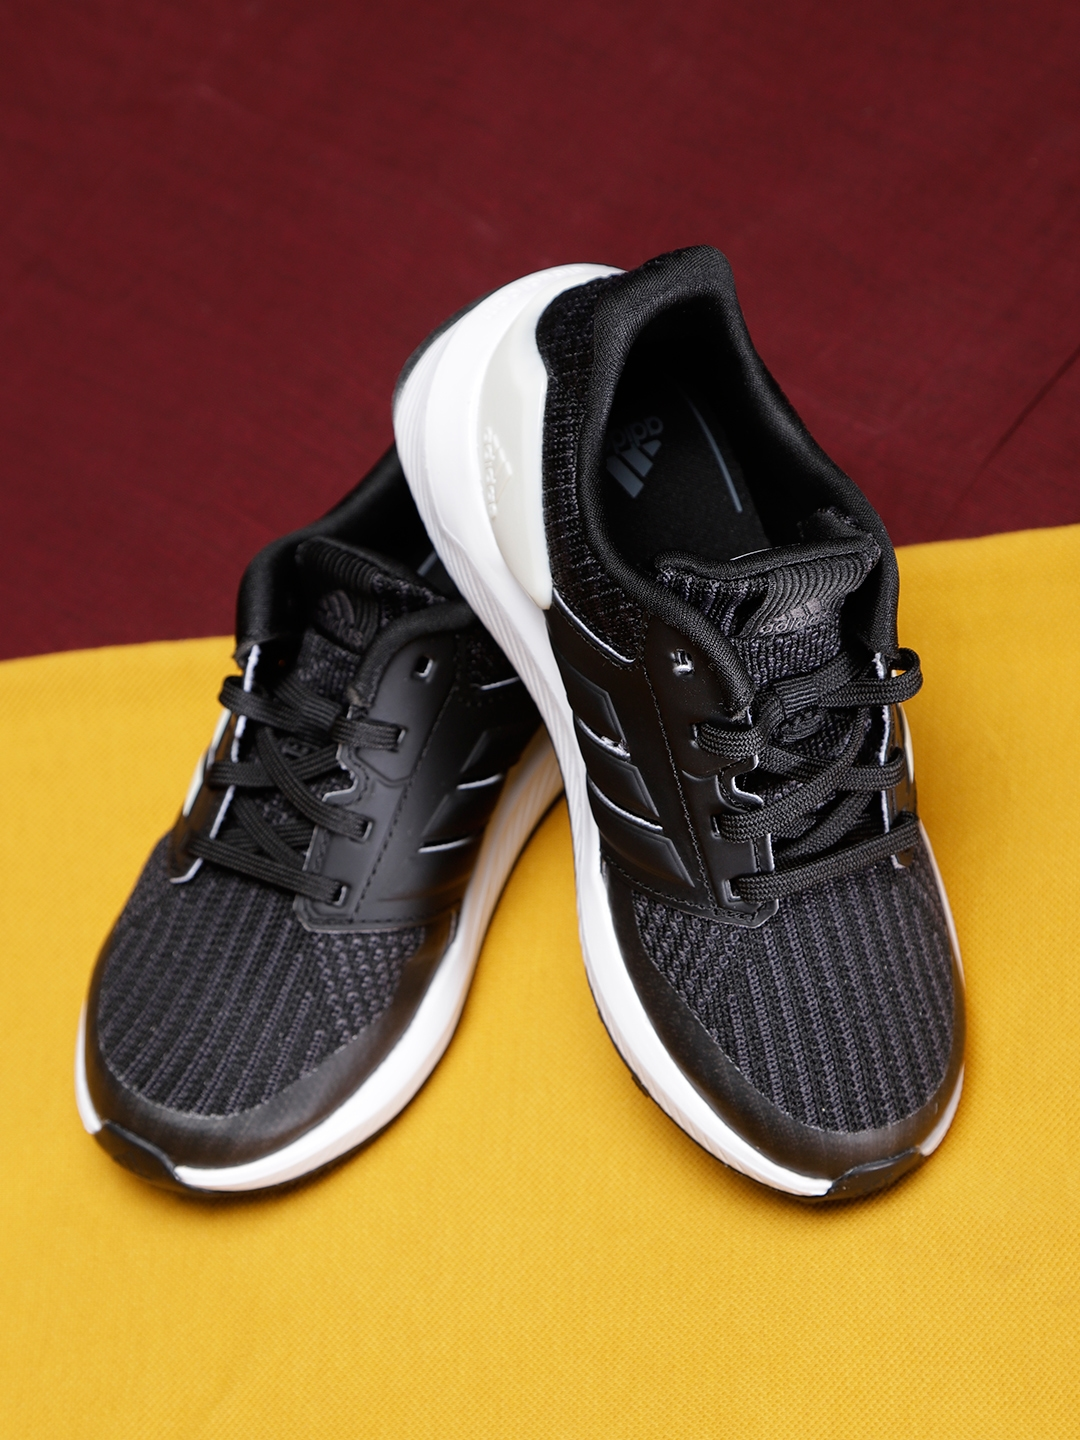 6440a71a4a2f Buy ADIDAS Kids Black Rapidarun Knit Running Shoes - Sports Shoes ...